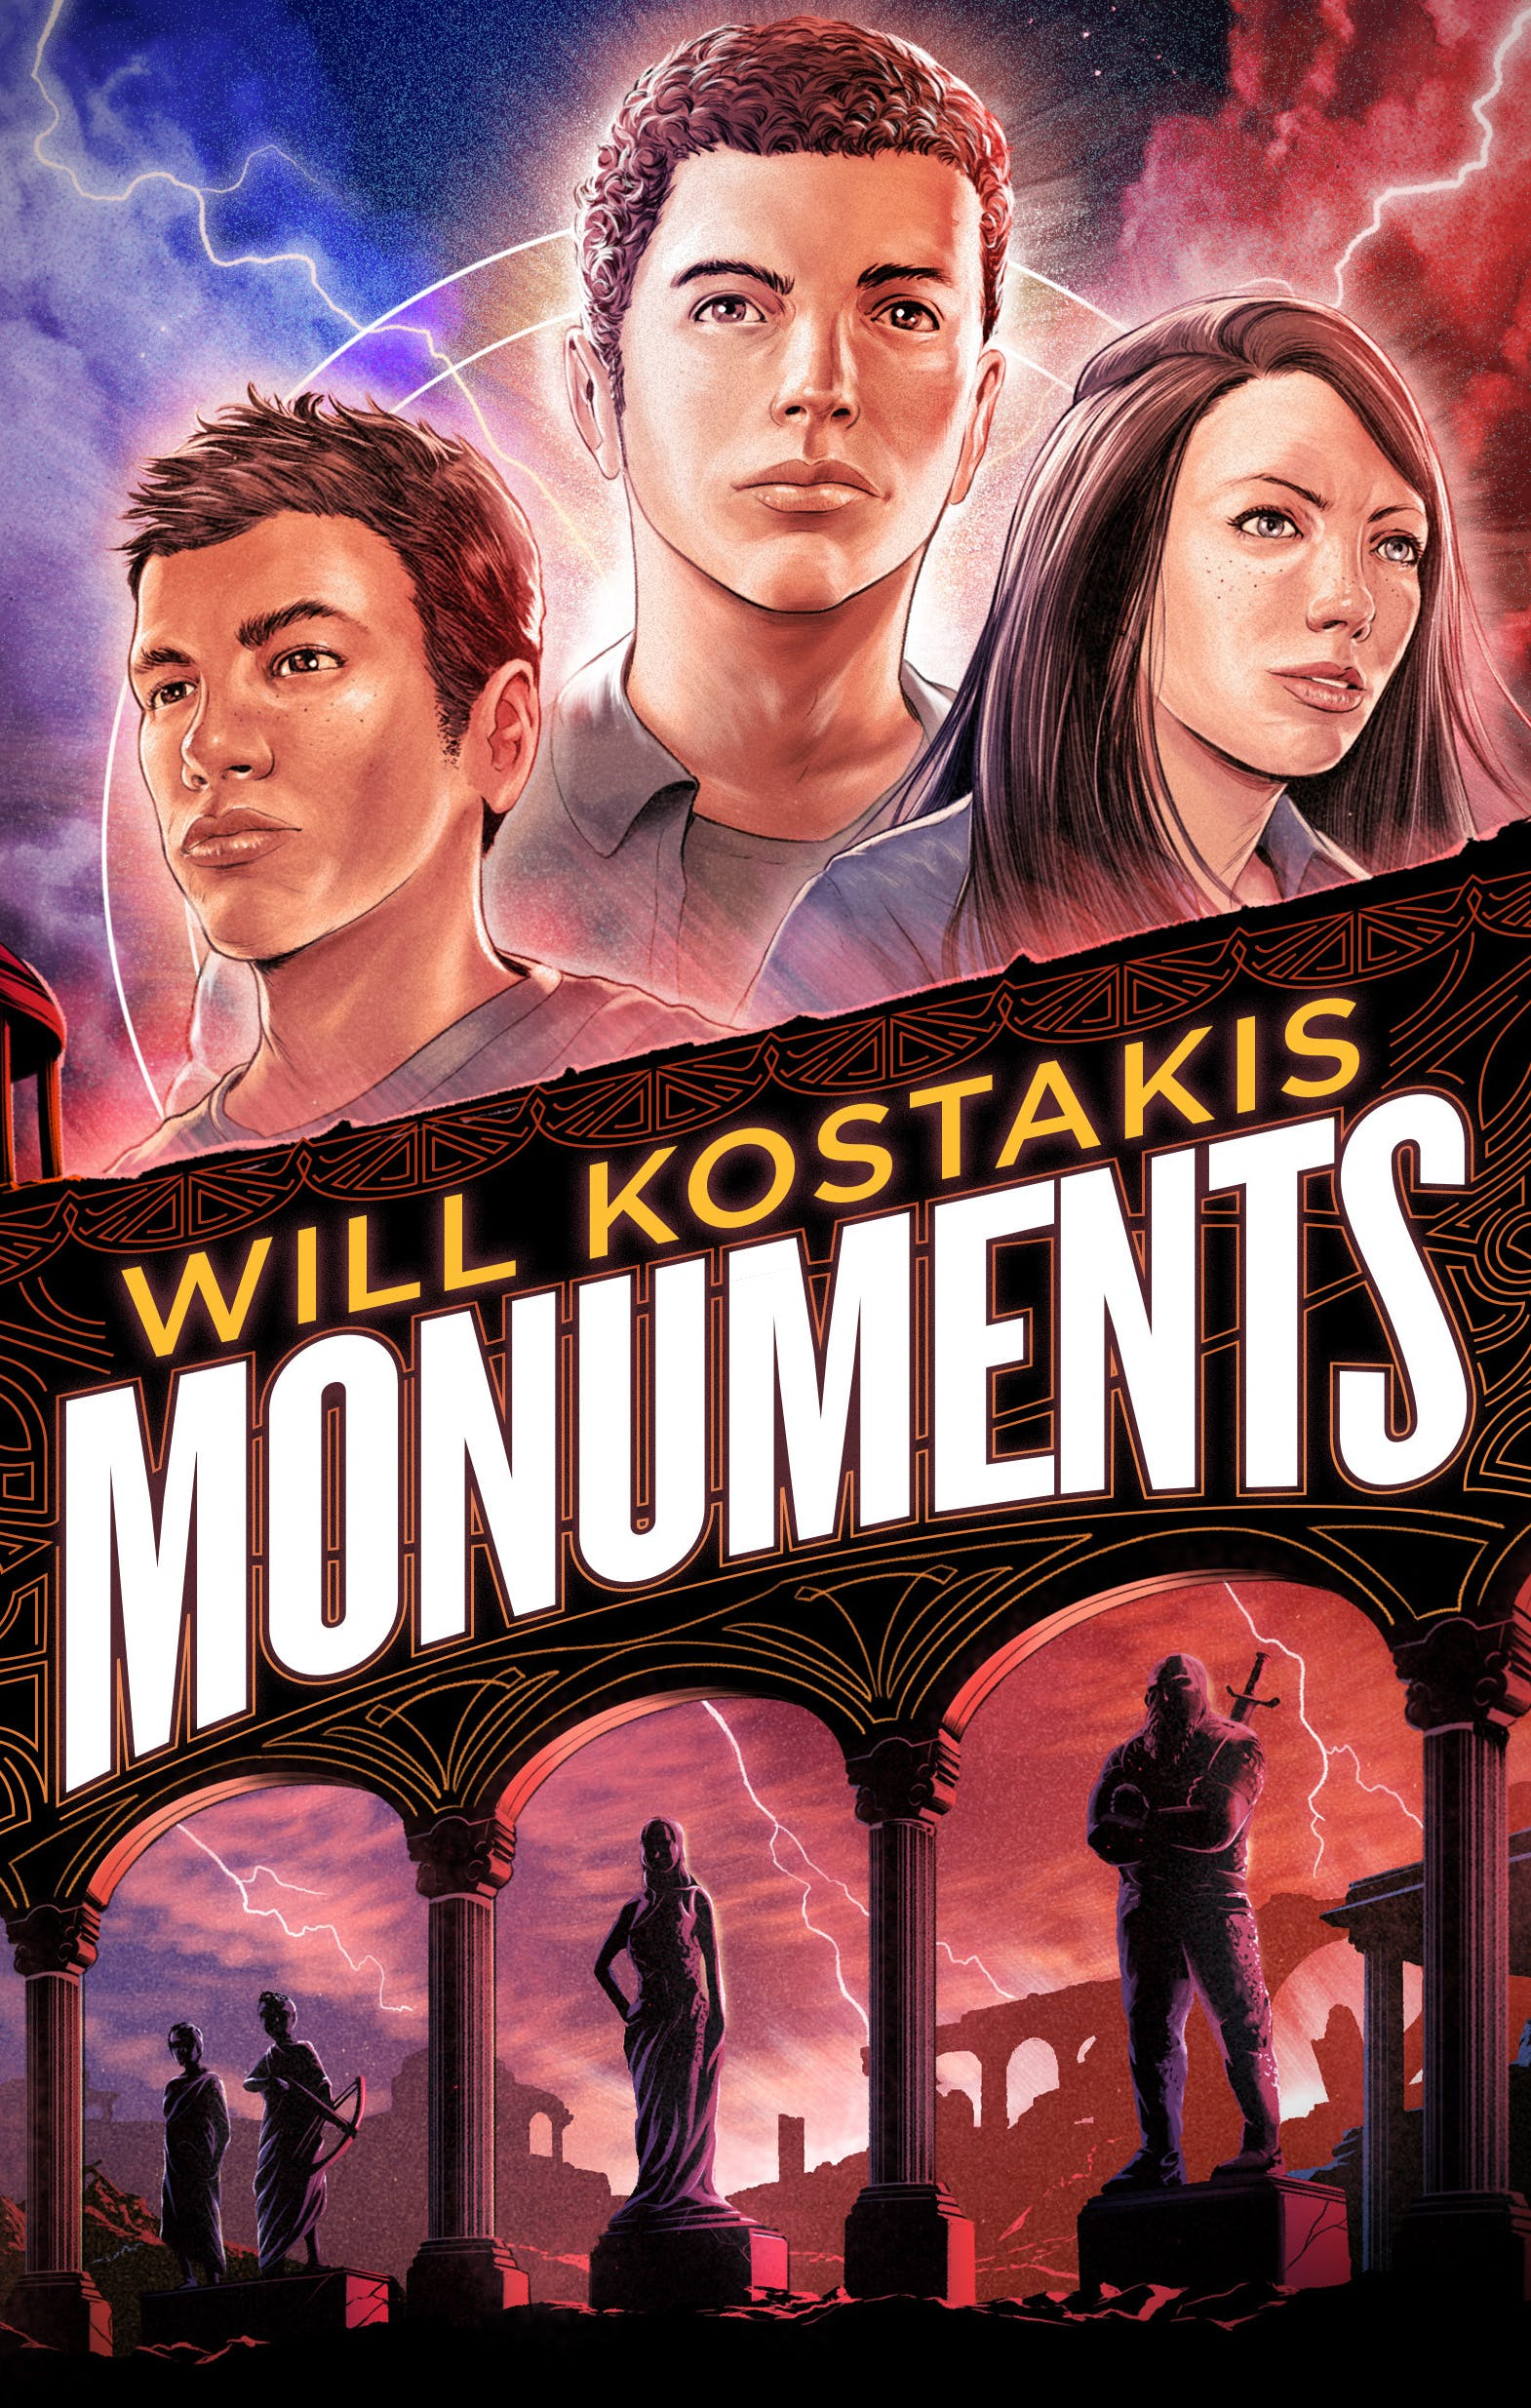 Book Launch - Monuments by Will Kostakis